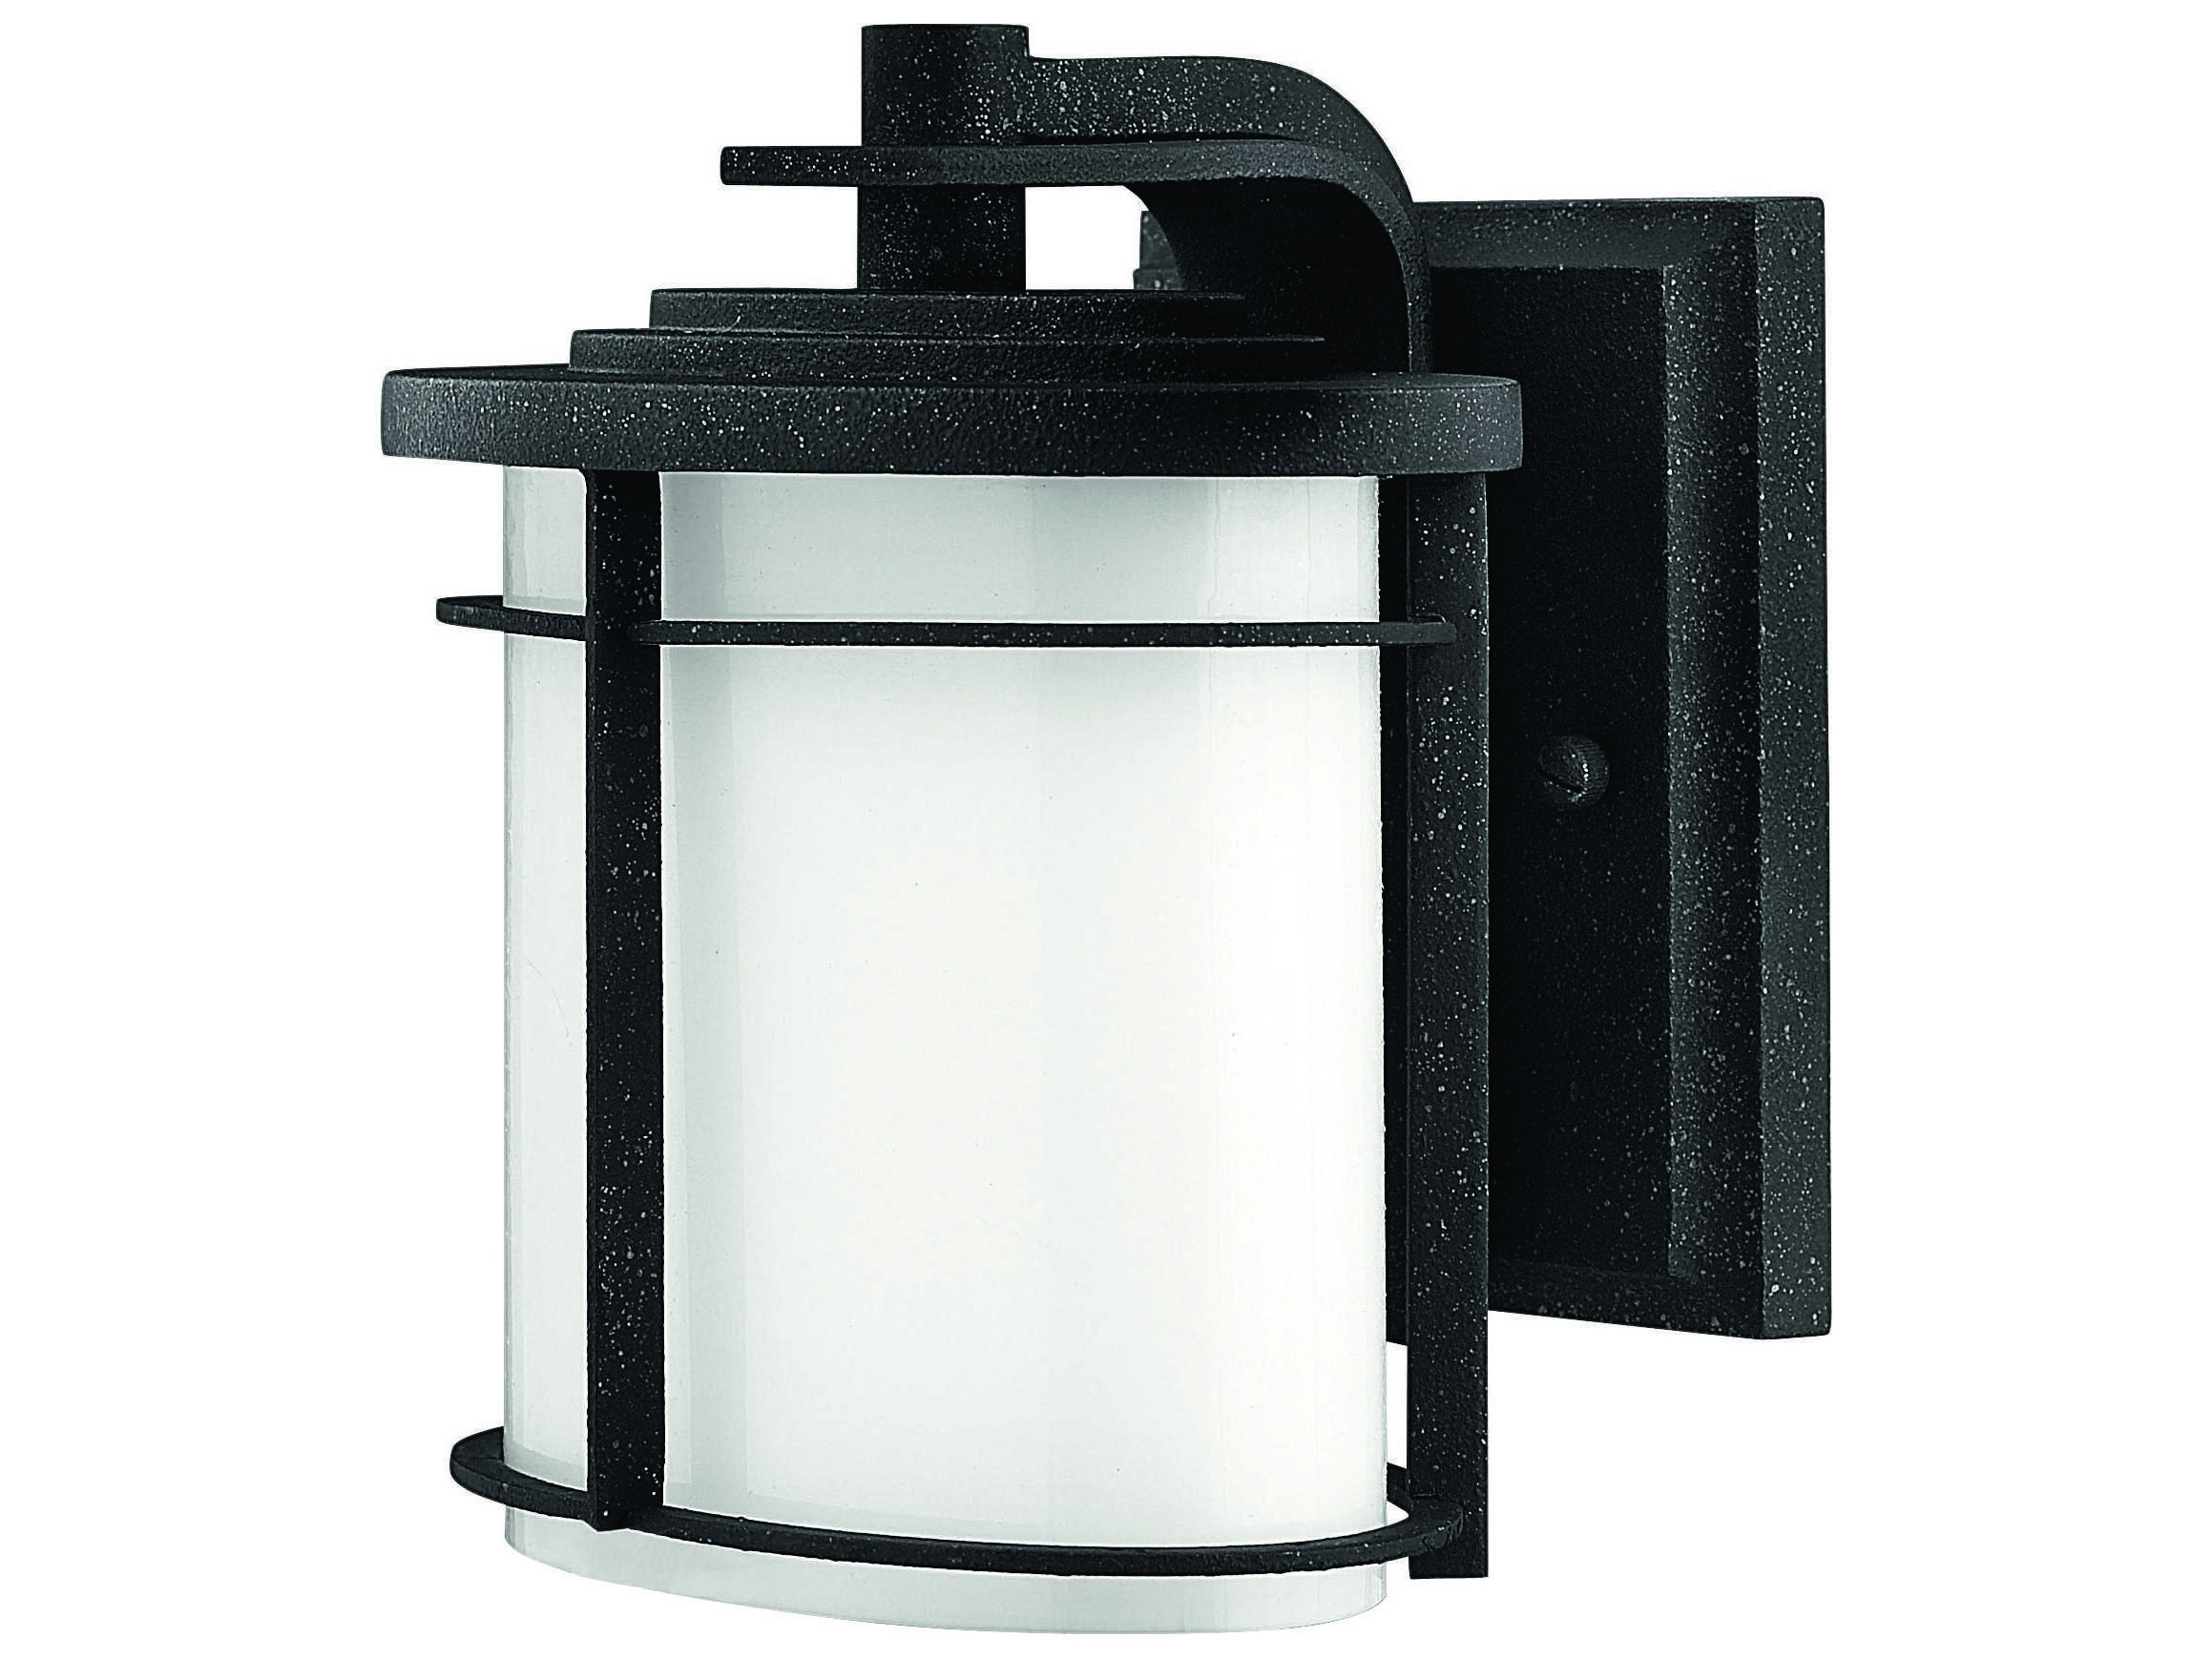 Hinkley Lighting Ledgewood Vintage Black LED Outdoor Wall Light 1126VK-LED